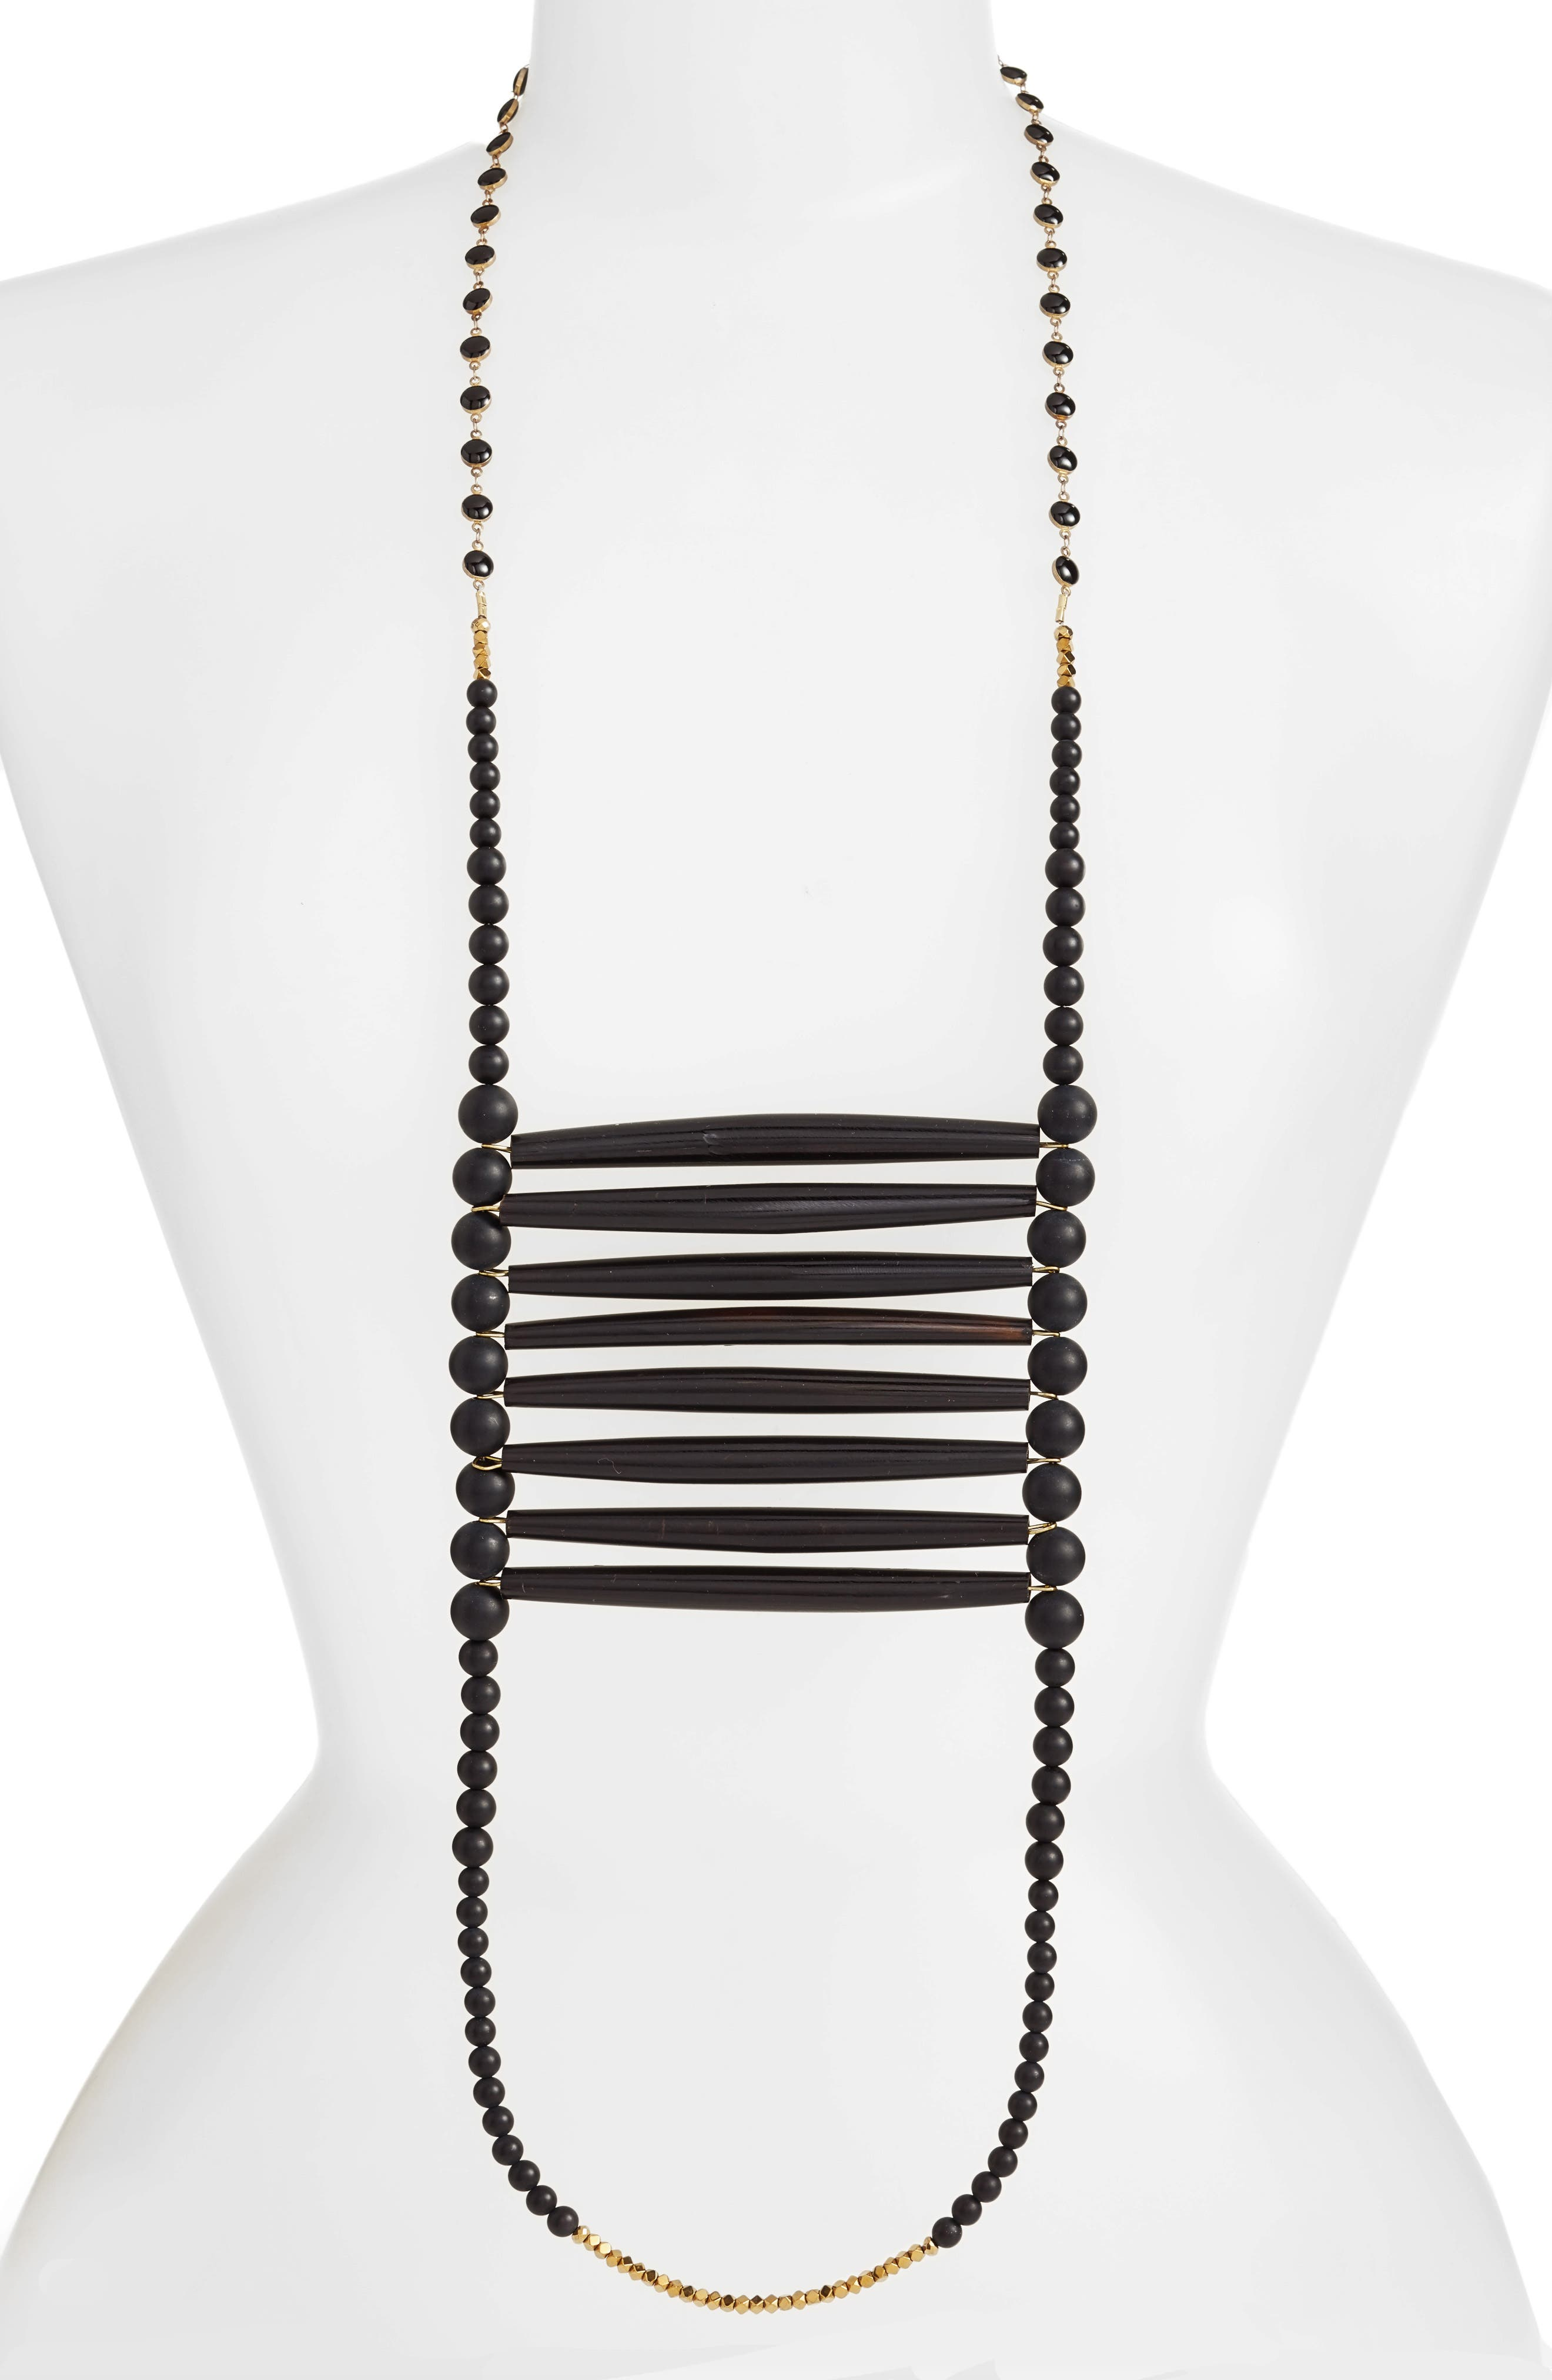 Into the Black Extra Long Beaded Necklace,                         Main,                         color, Black